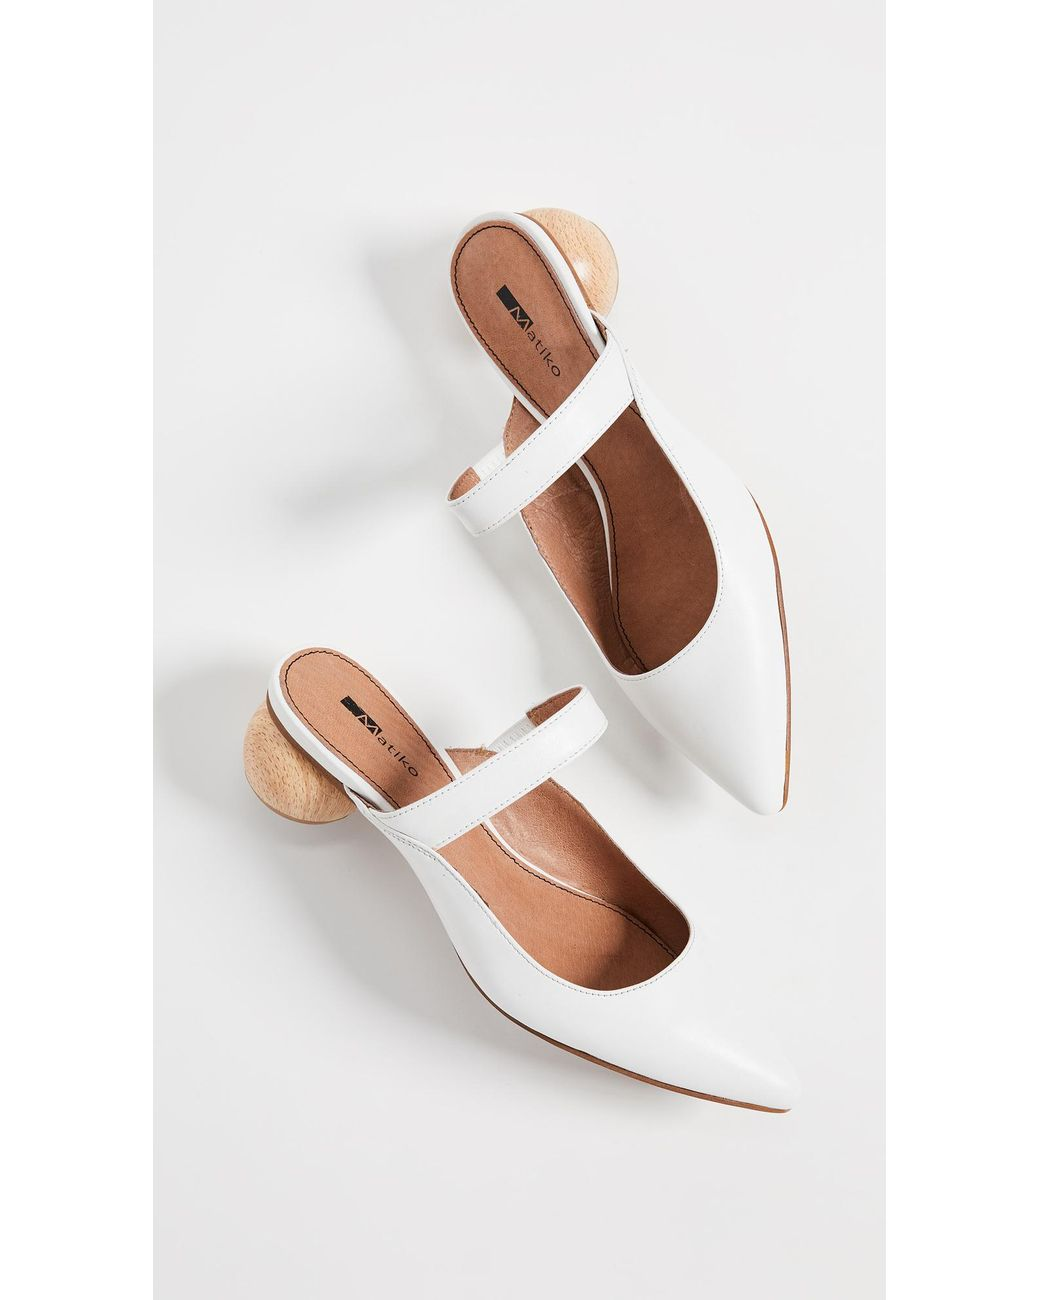 2d2f8657e2d Lyst - Matiko Virca Point Toe Mules in White